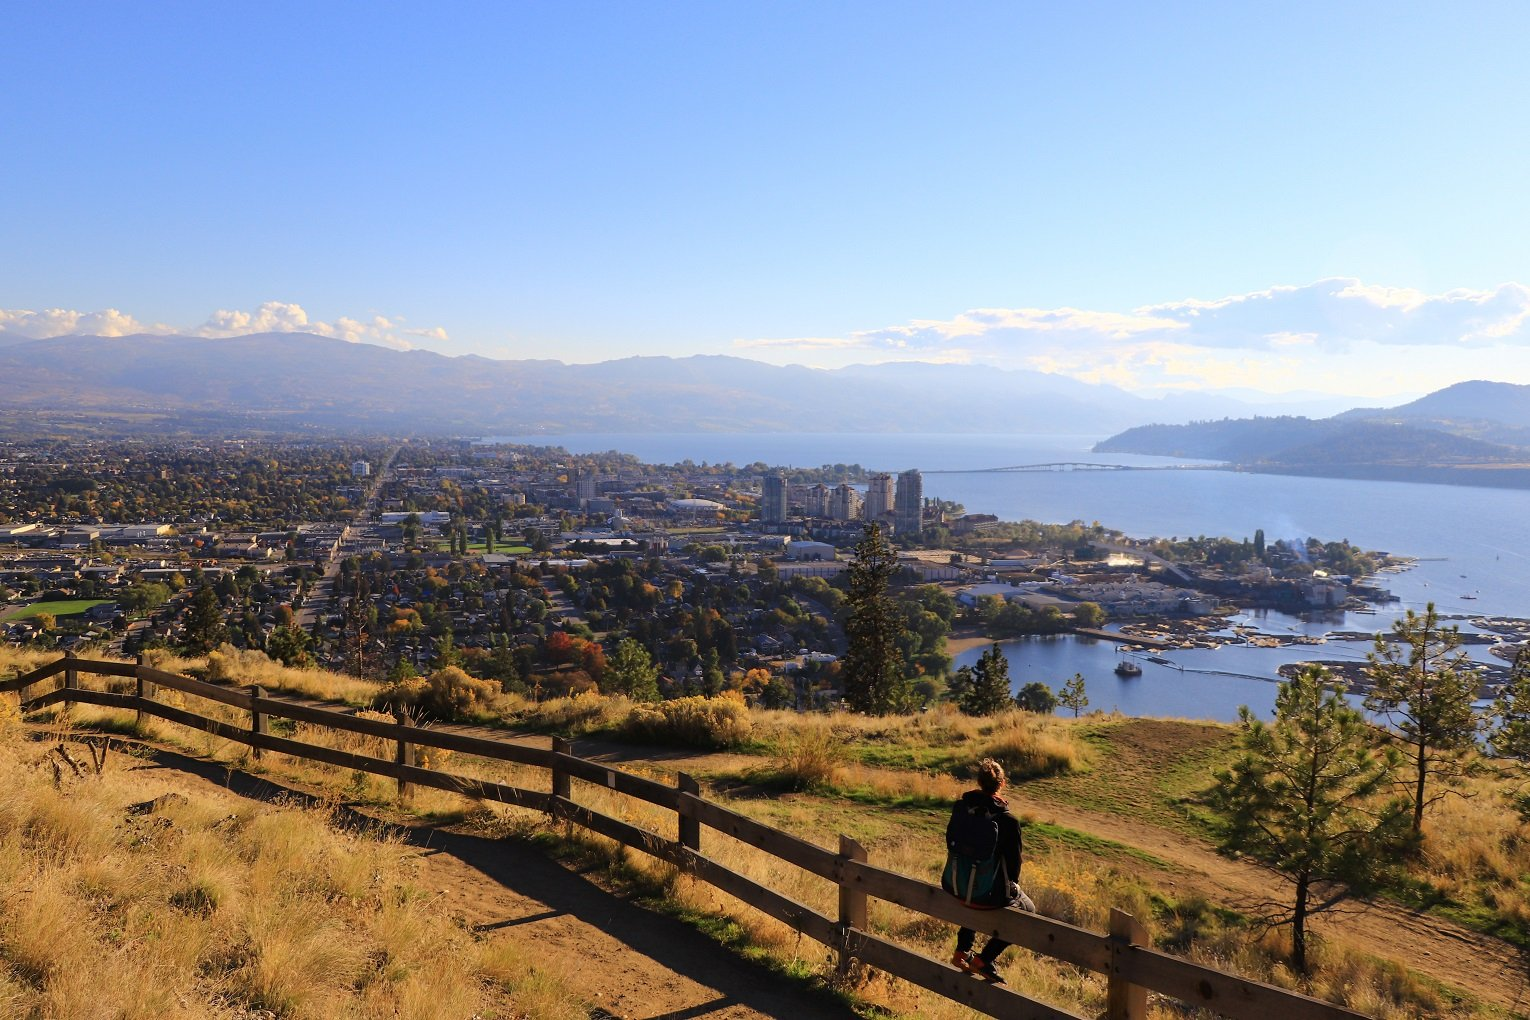 Knox Mountain Apex trail overlooking City of Kelowna travelling Kelowna on a budget